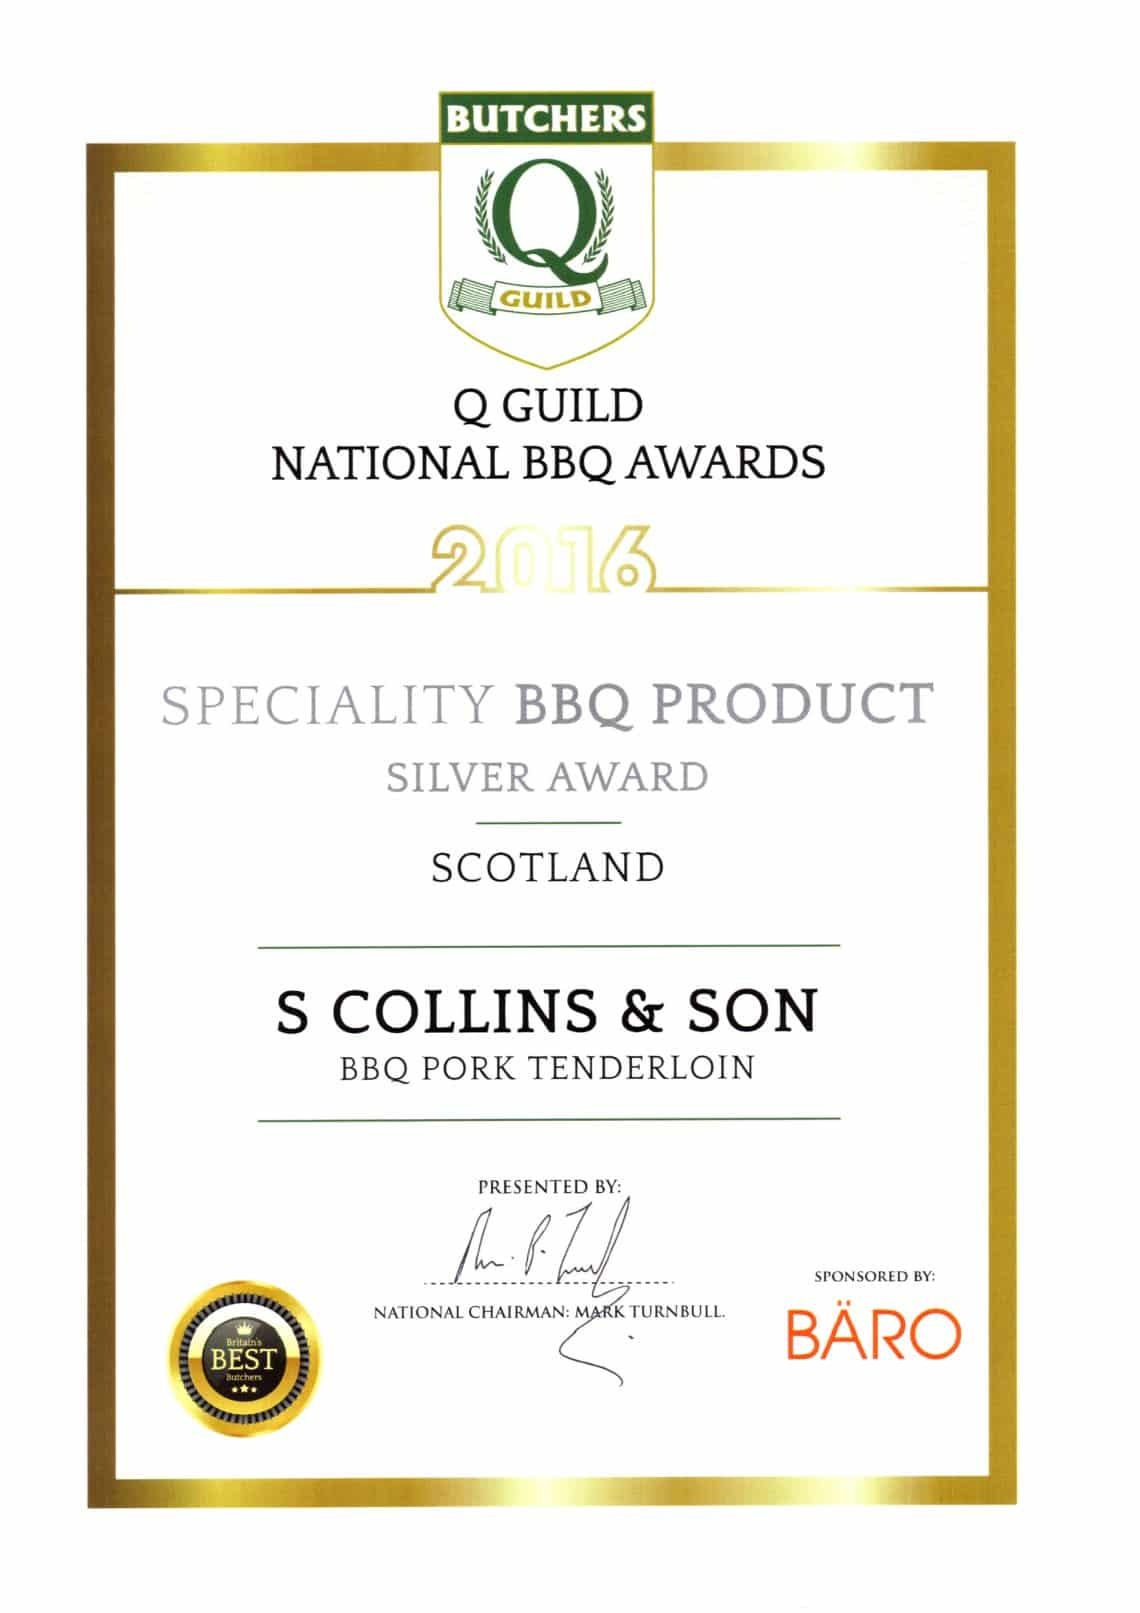 National BBQ Awards 2016: BBQ Pork Tenderloin